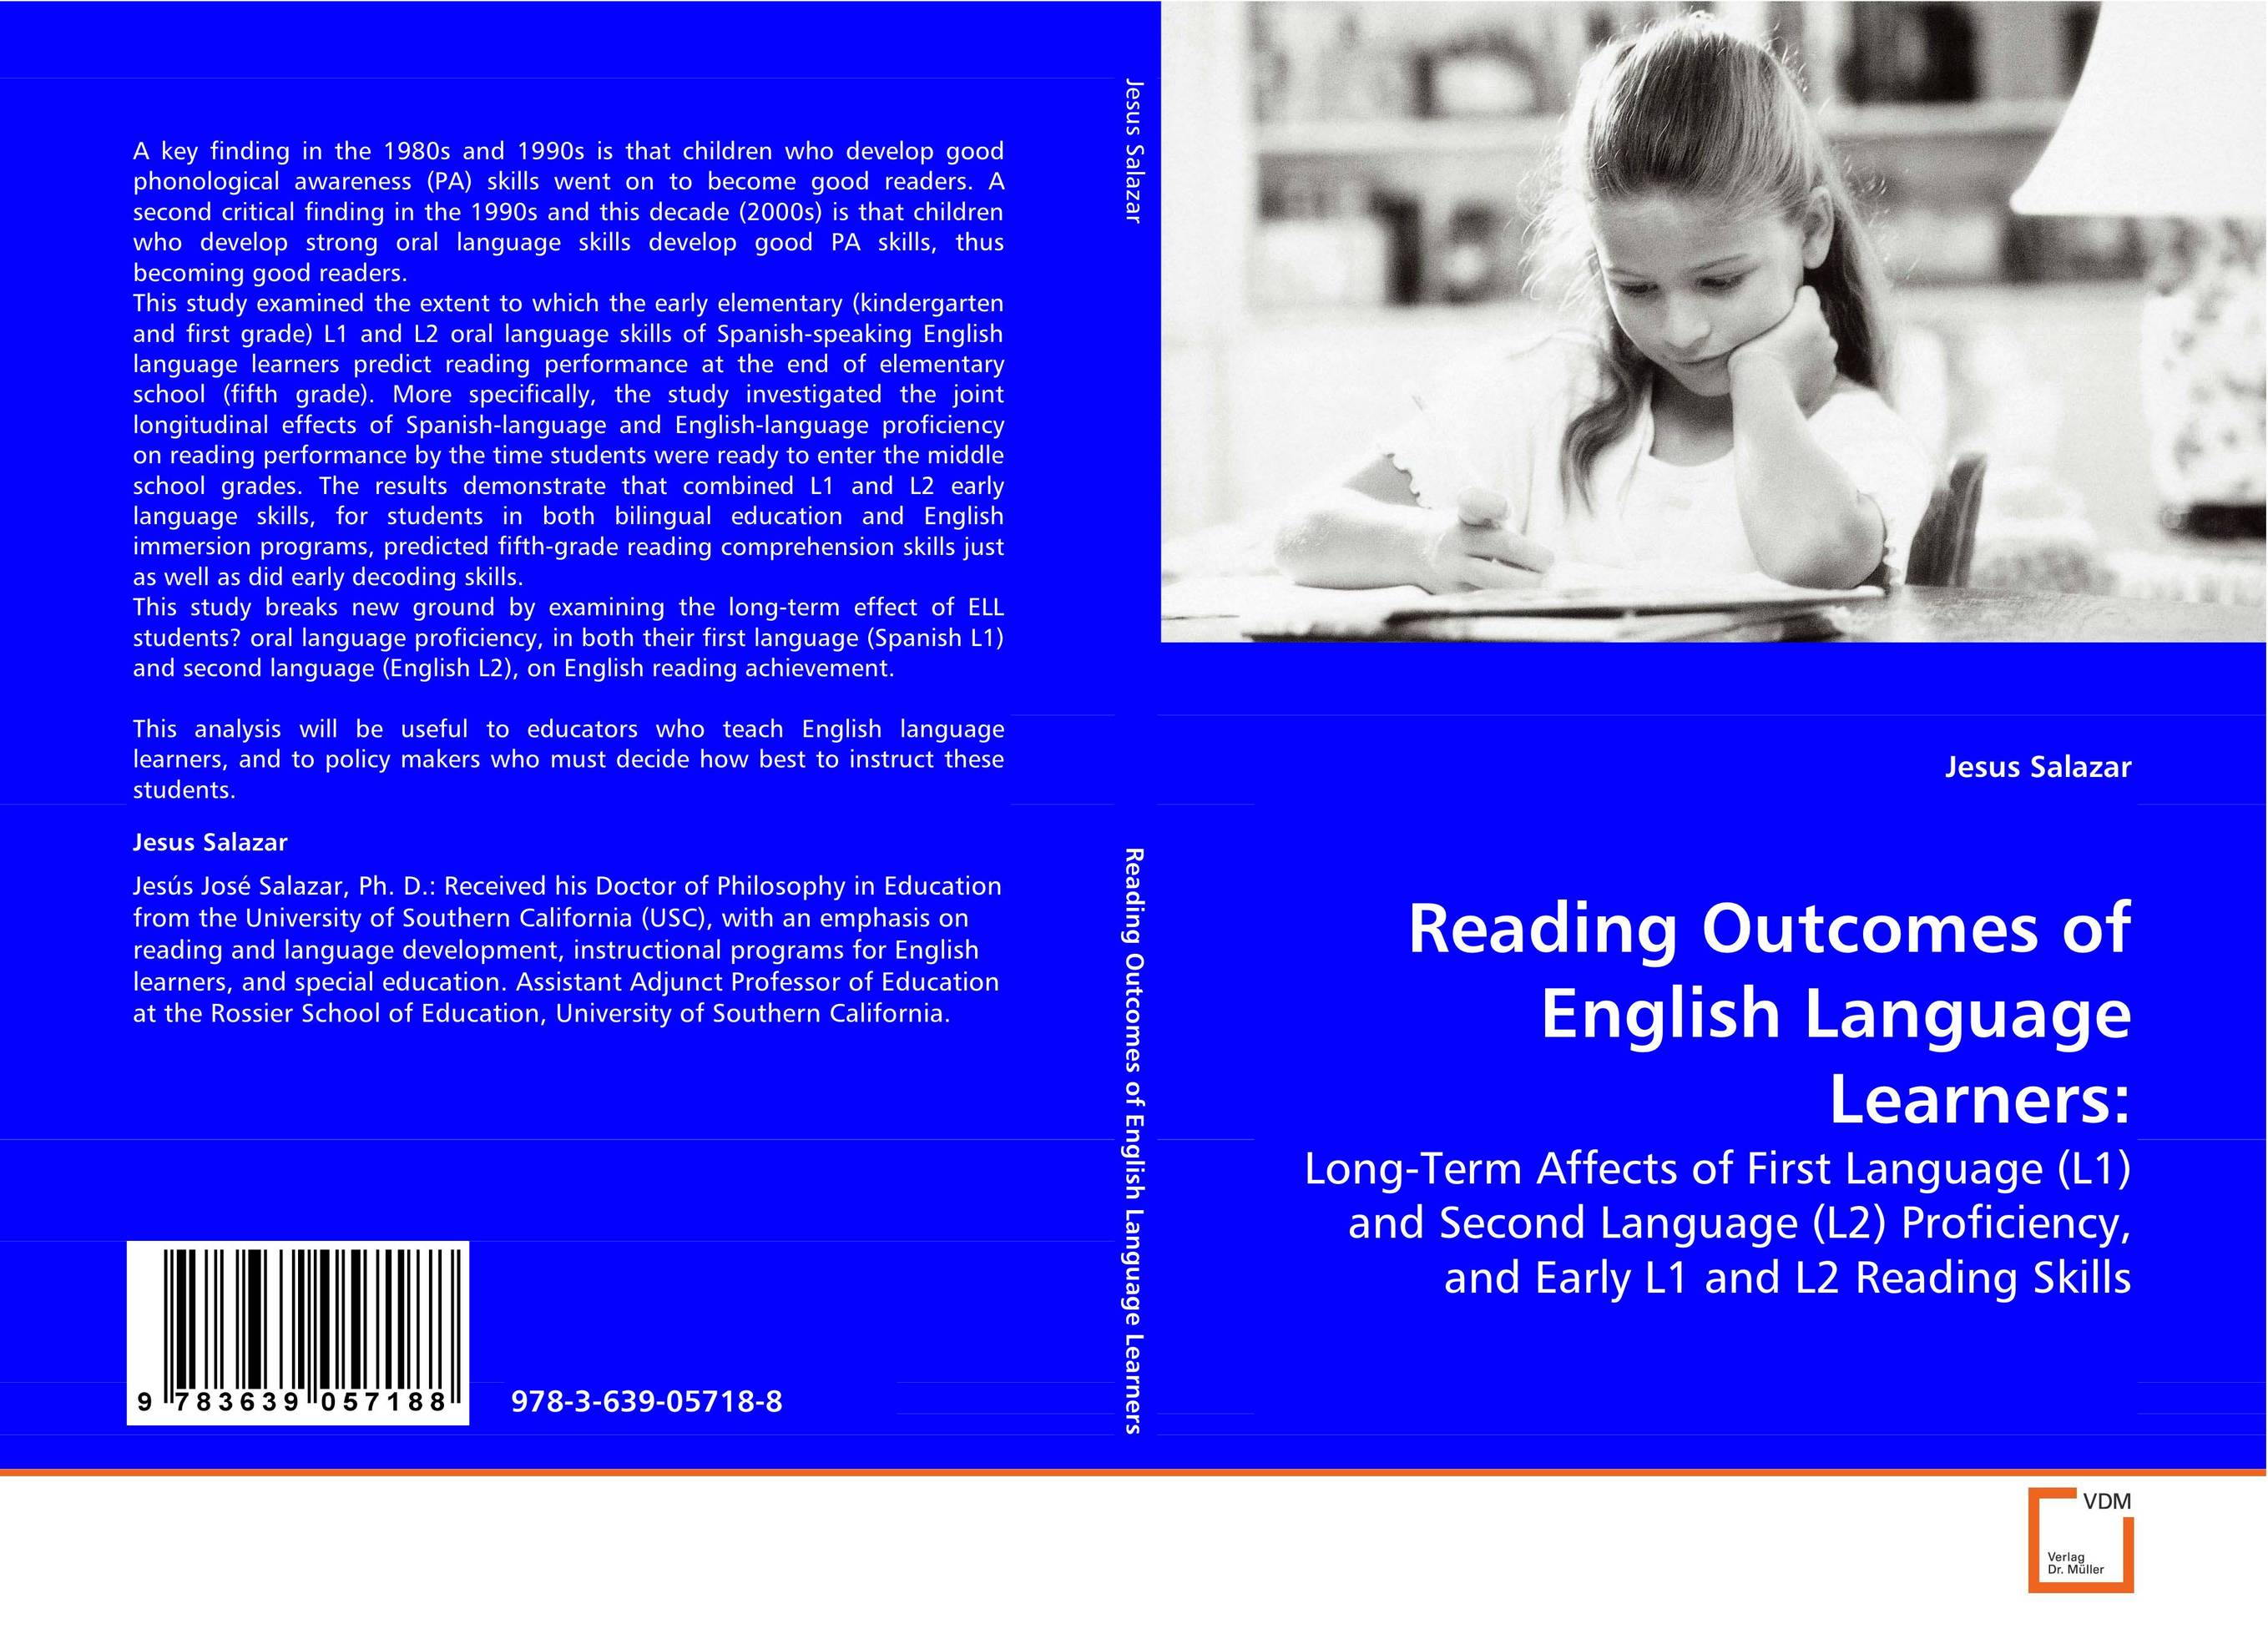 Reading Outcomes of English Language Learners: attitudes to bilingualism among japanese learners of english